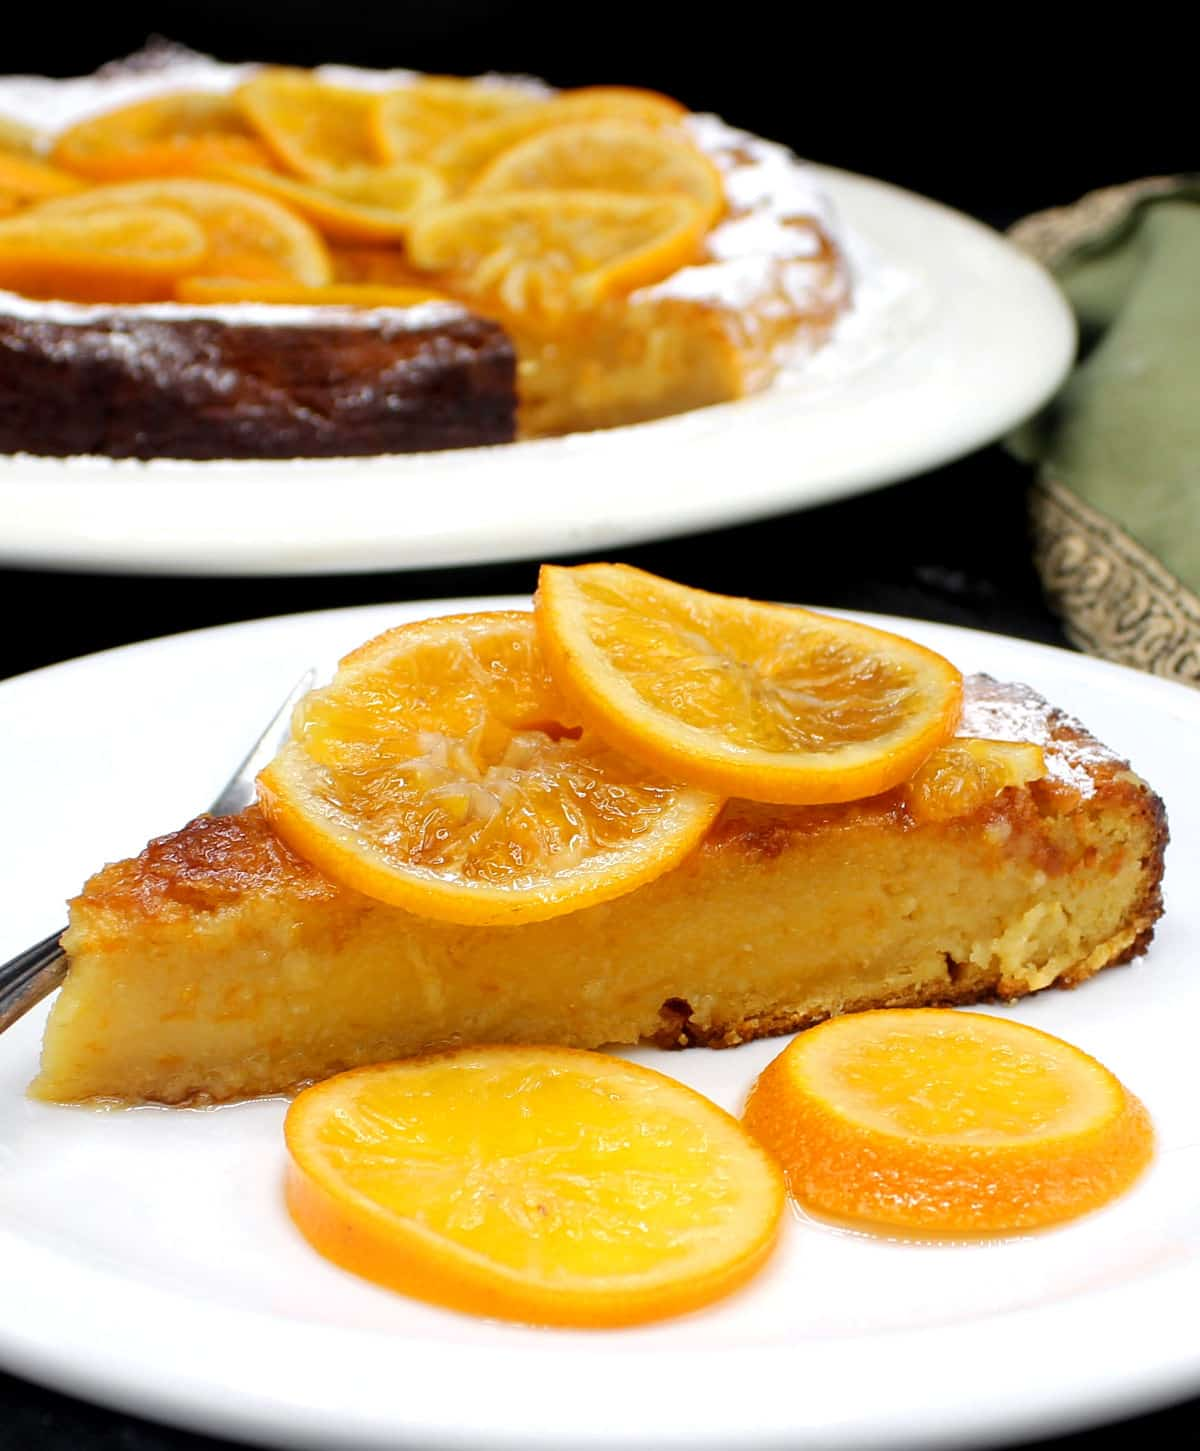 A close up of a slice of vegan clementine cake with candied clementine slices on a white plate with the full cake behind.